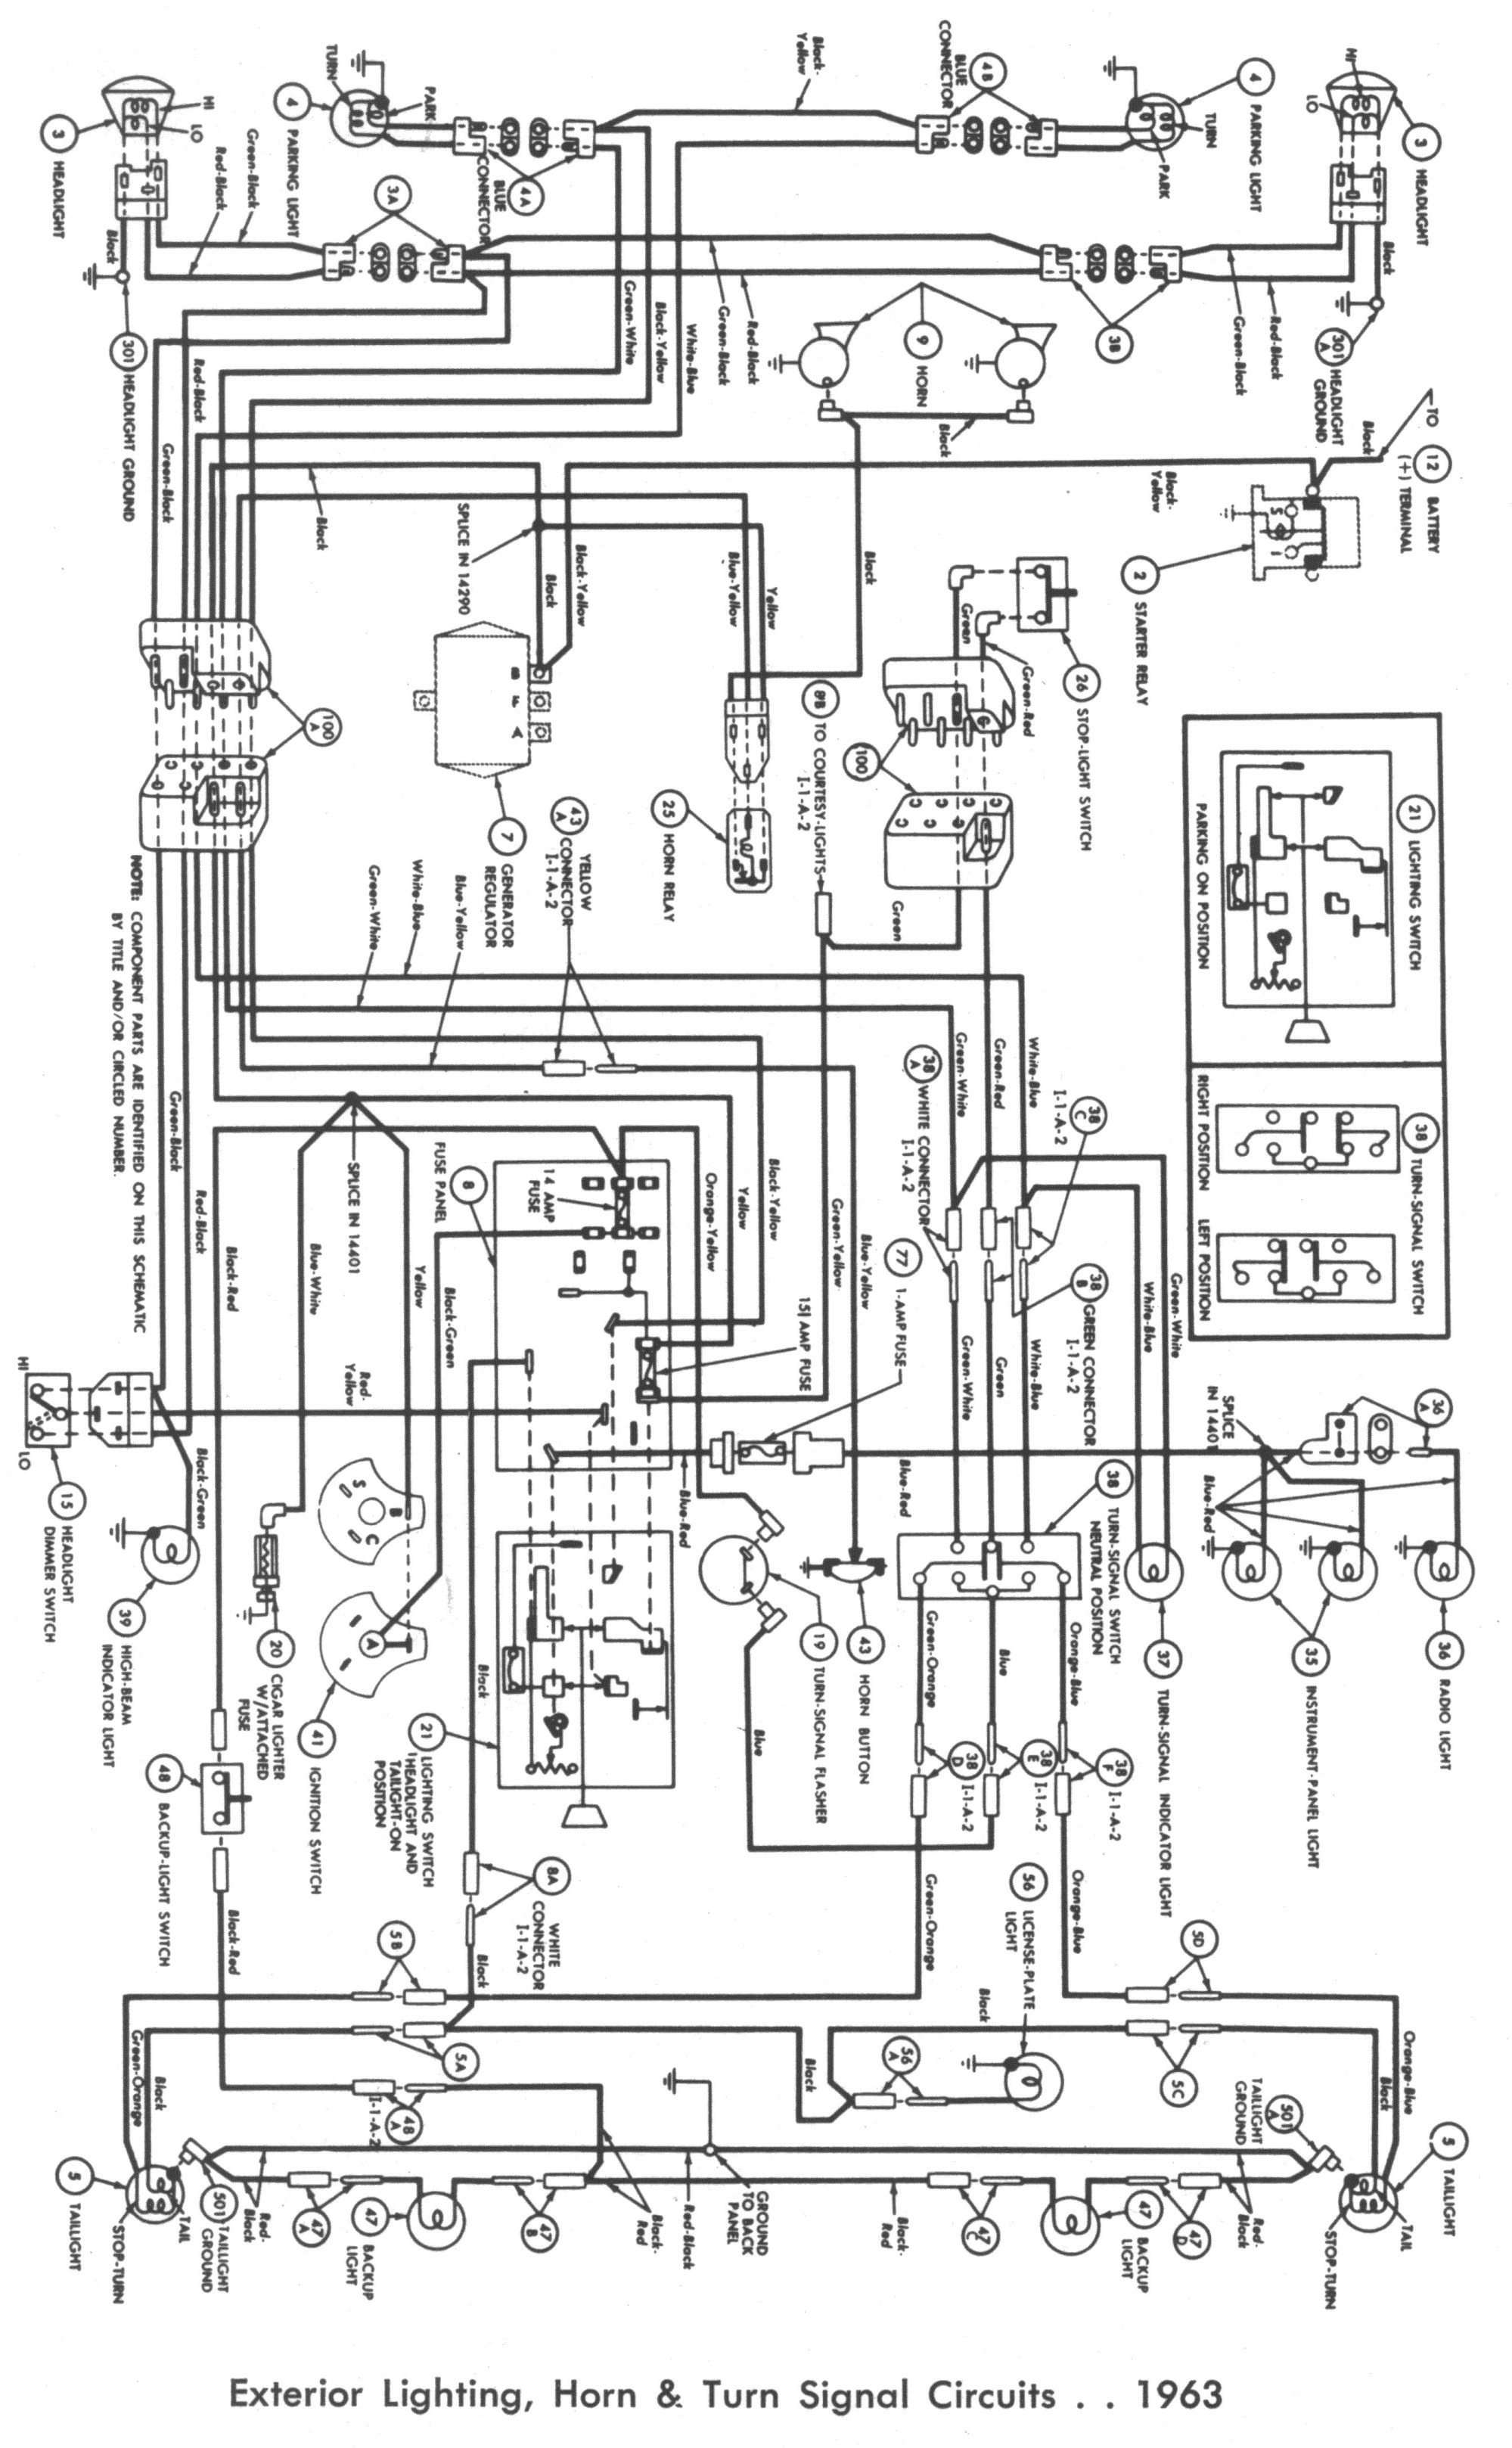 hight resolution of falcon wiring diagrams wiring diagram expert ford falcon el xr6 wiring diagrams falcon wiring diagrams